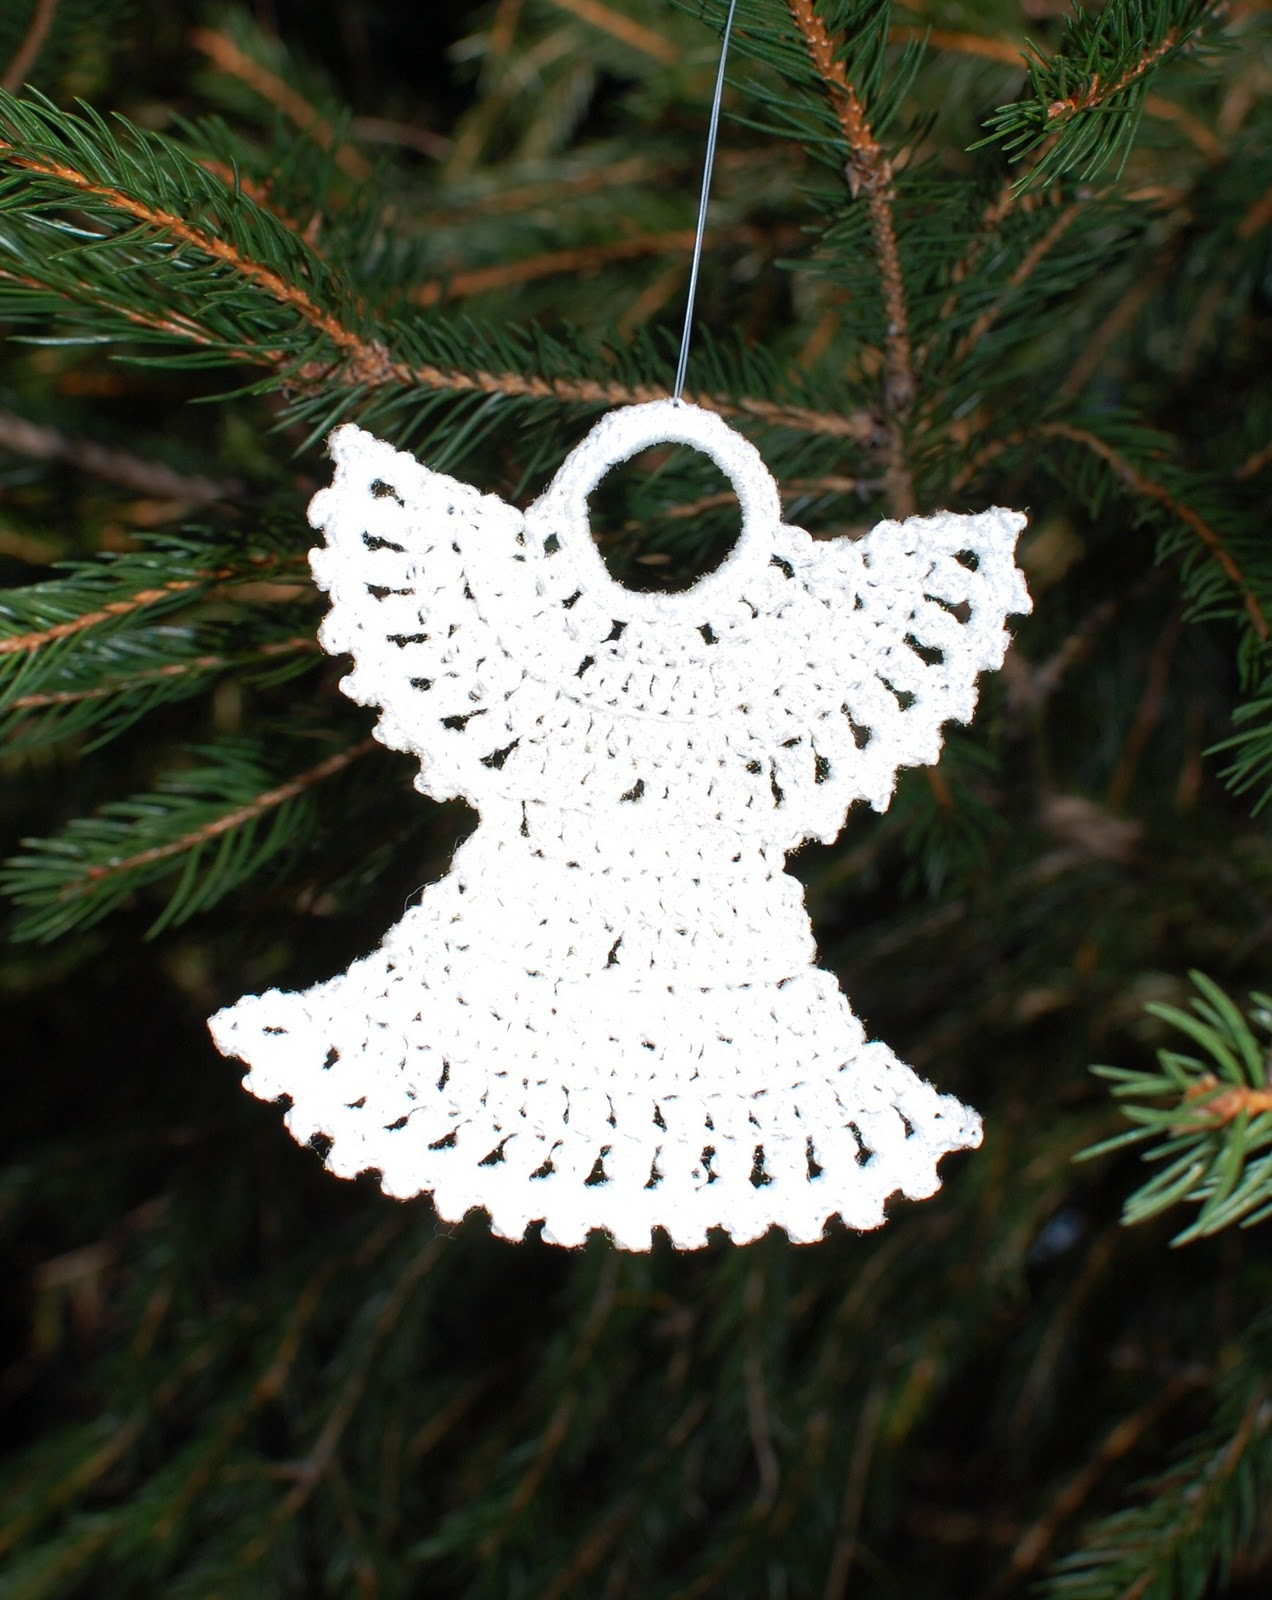 Crocheted Christmas Ornaments | Petals to Picots